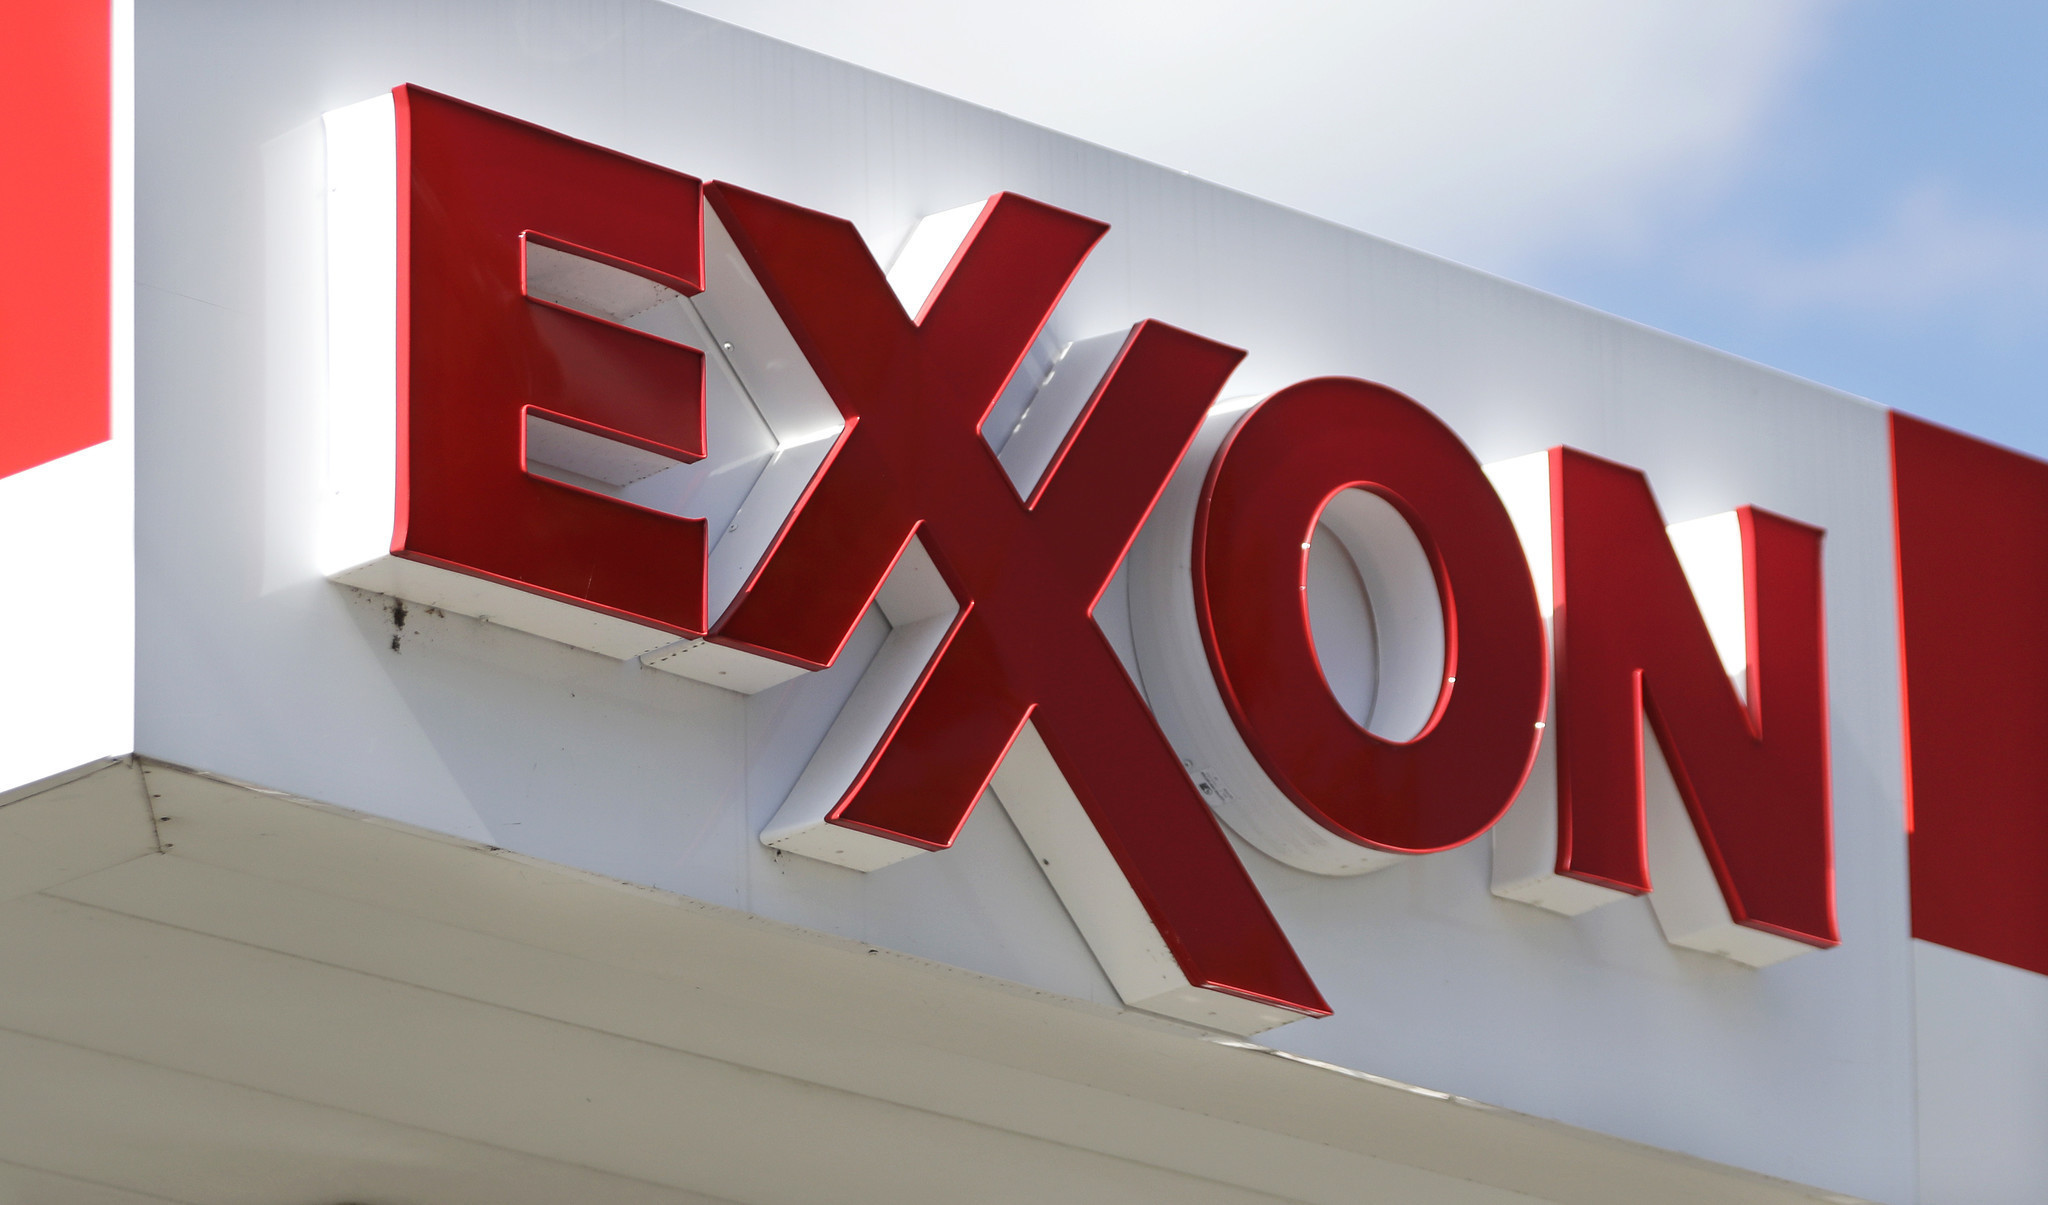 Investors press Exxon Mobil to disclose how climate-change policies affect it